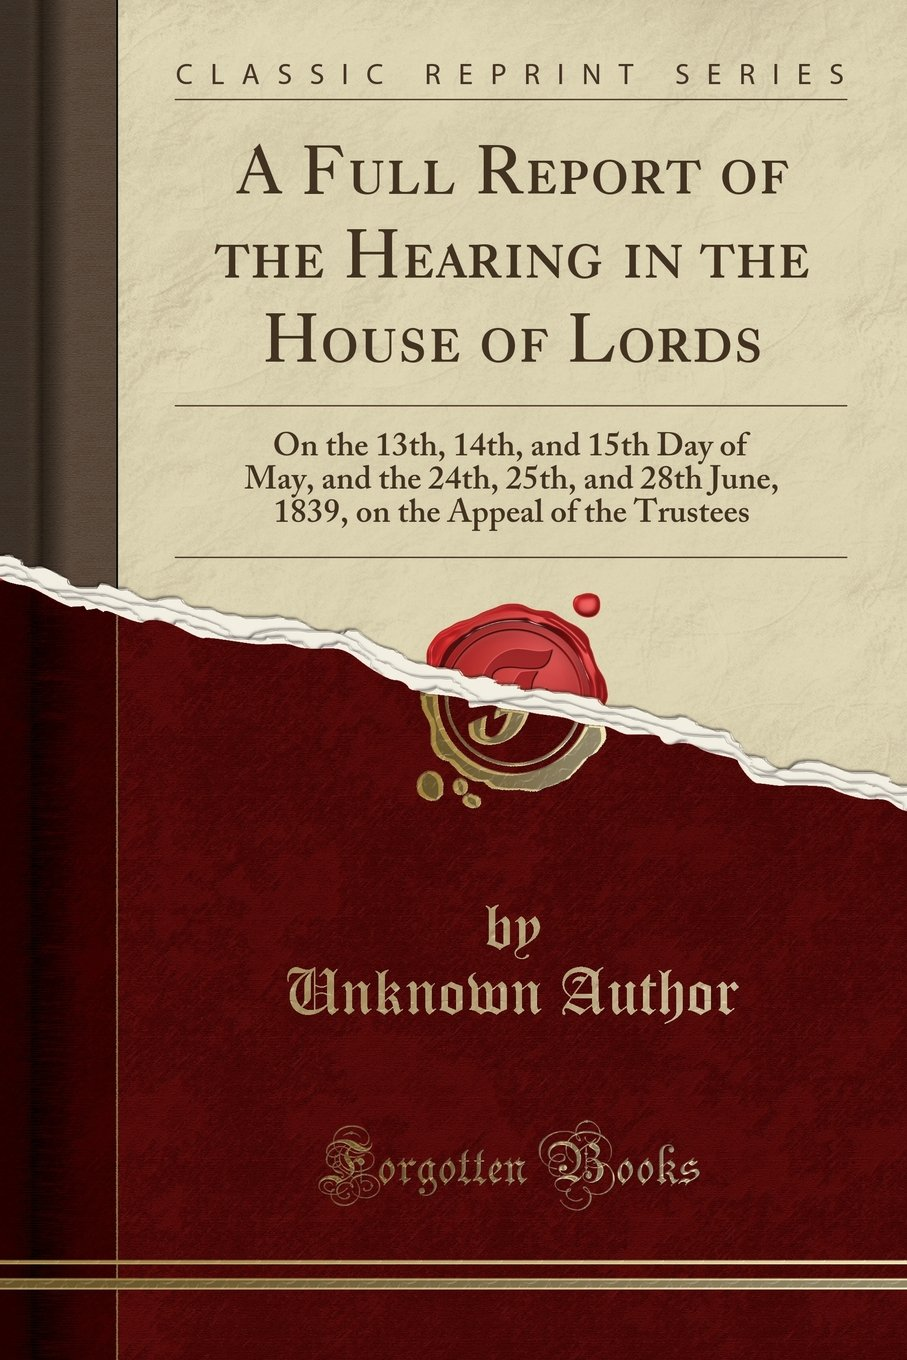 Read Online A Full Report of the Hearing in the House of Lords: On the 13th, 14th, and 15th Day of May, and the 24th, 25th, and 28th June, 1839, on the Appeal of the Trustees (Classic Reprint) PDF